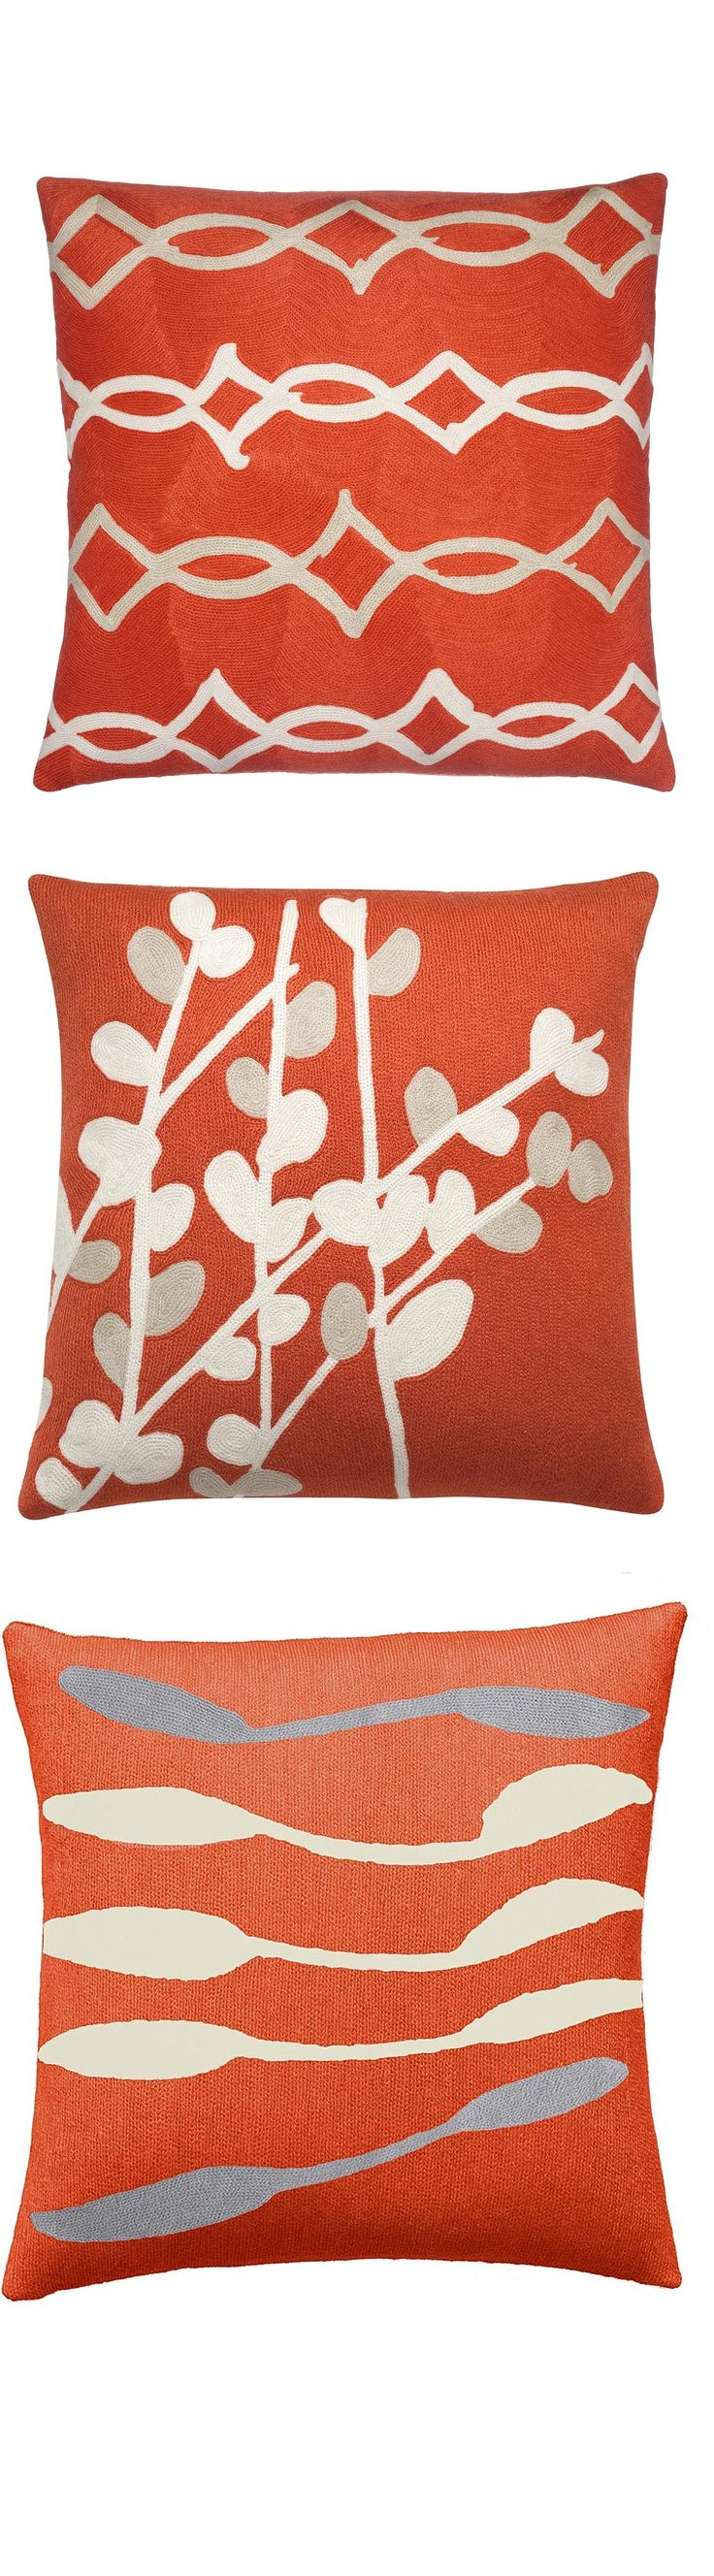 9 best images about Orange Pillows on Pinterest Sofa pillows, Modern and Throw pillows